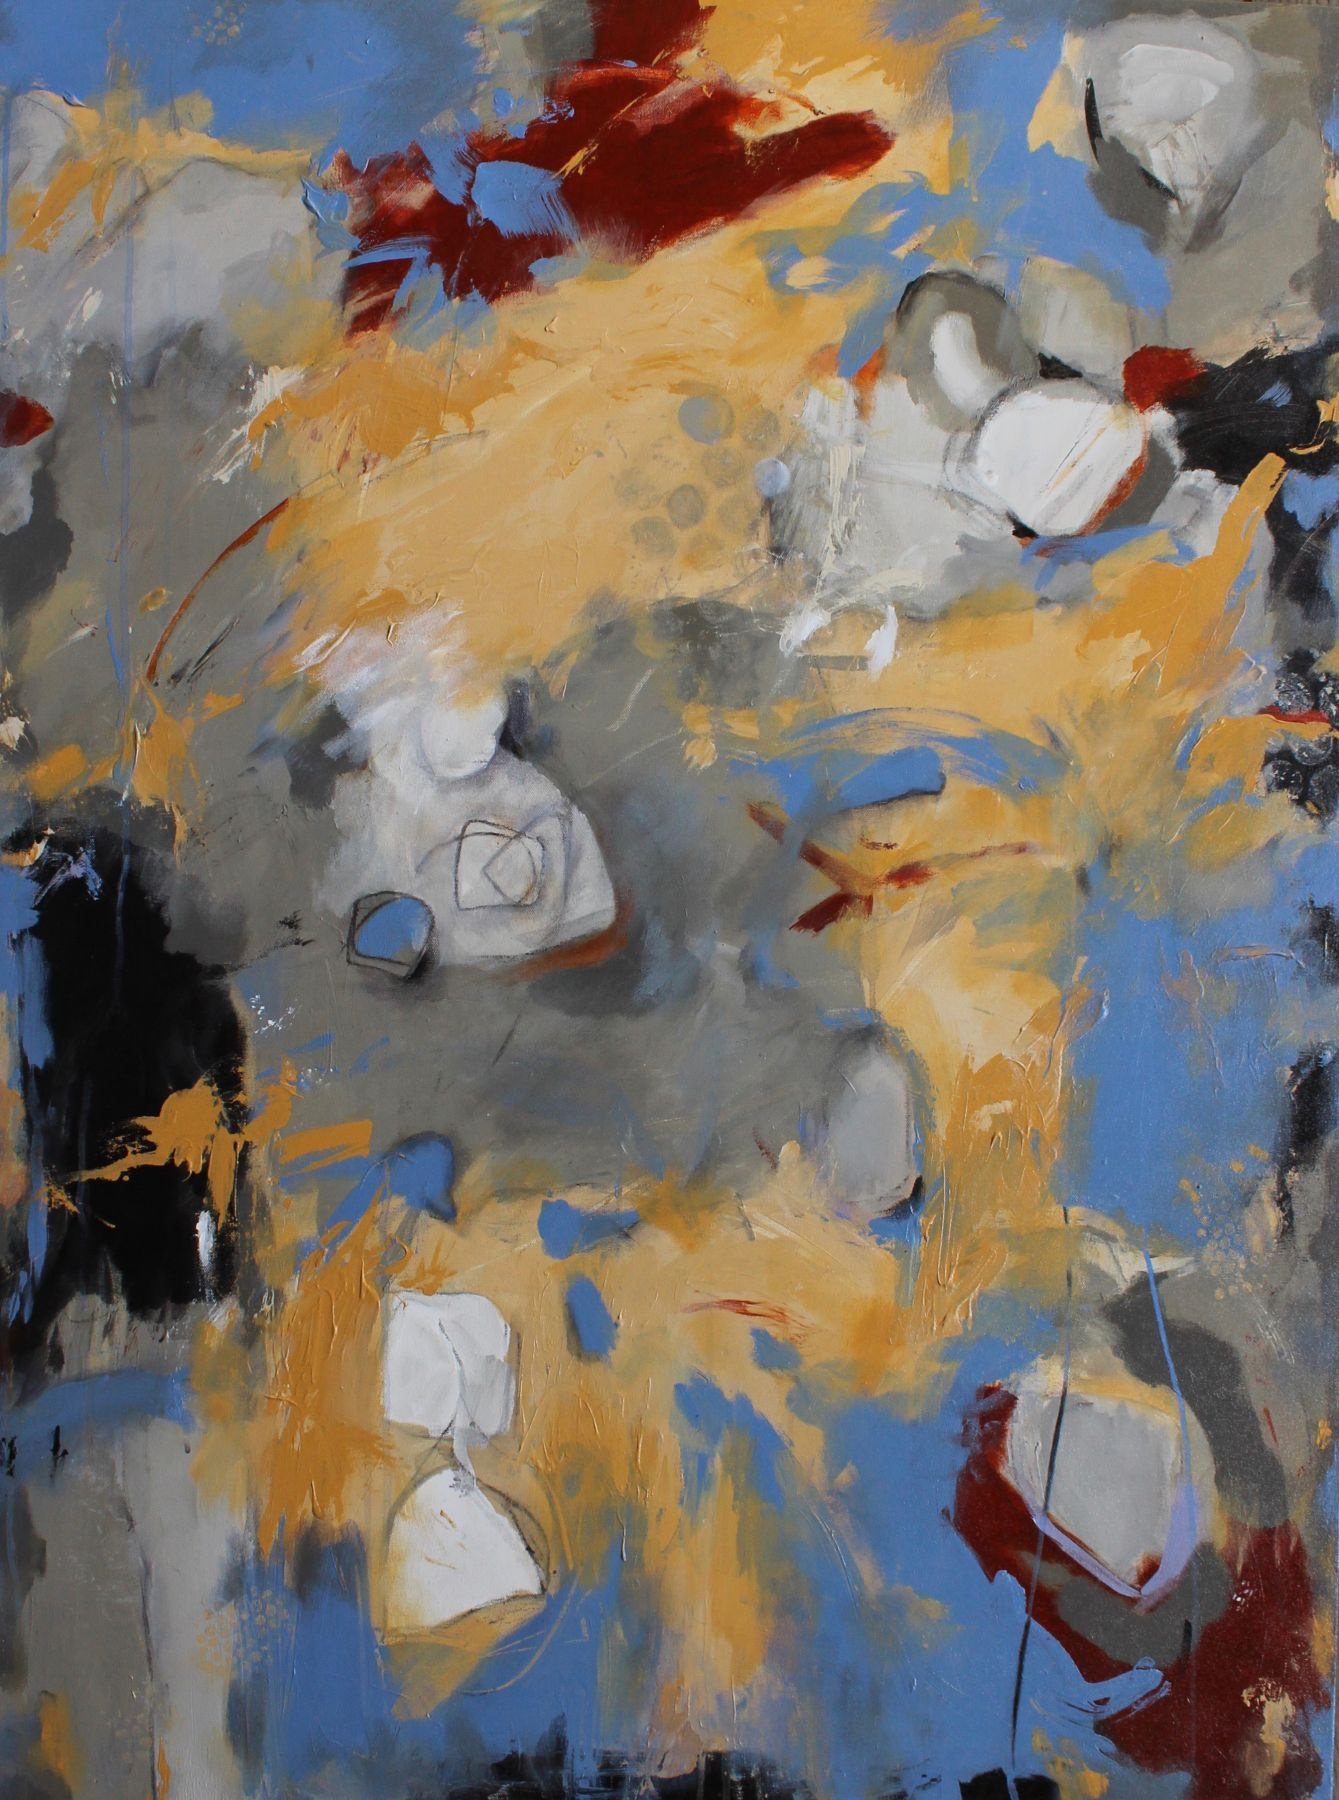 Diane Walker-Gladney, Silly Hour,  Acrylic and graphite on canvas,  48 X 36 inches. Abstract work with grey, yellow, dark maroon and blue colors organically and gesturally painted. Diane Walker-Gladney celebrates and paints her childhood experiences and insignificant moments that she feels defines her story.